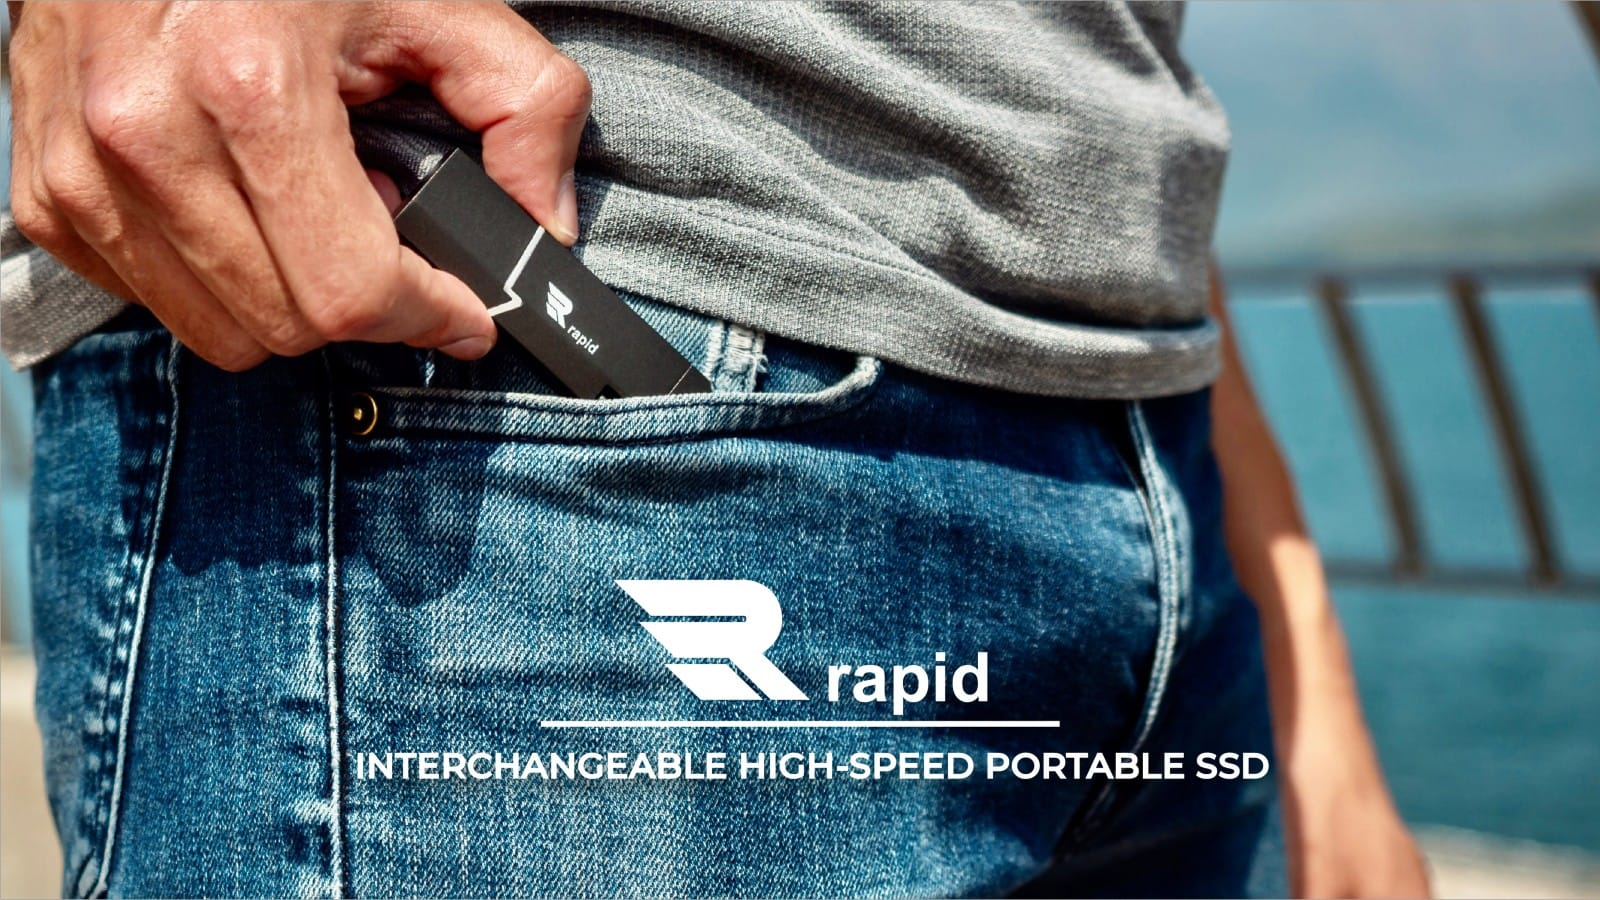 Rapid SSD puts up to 2TB in your pocket